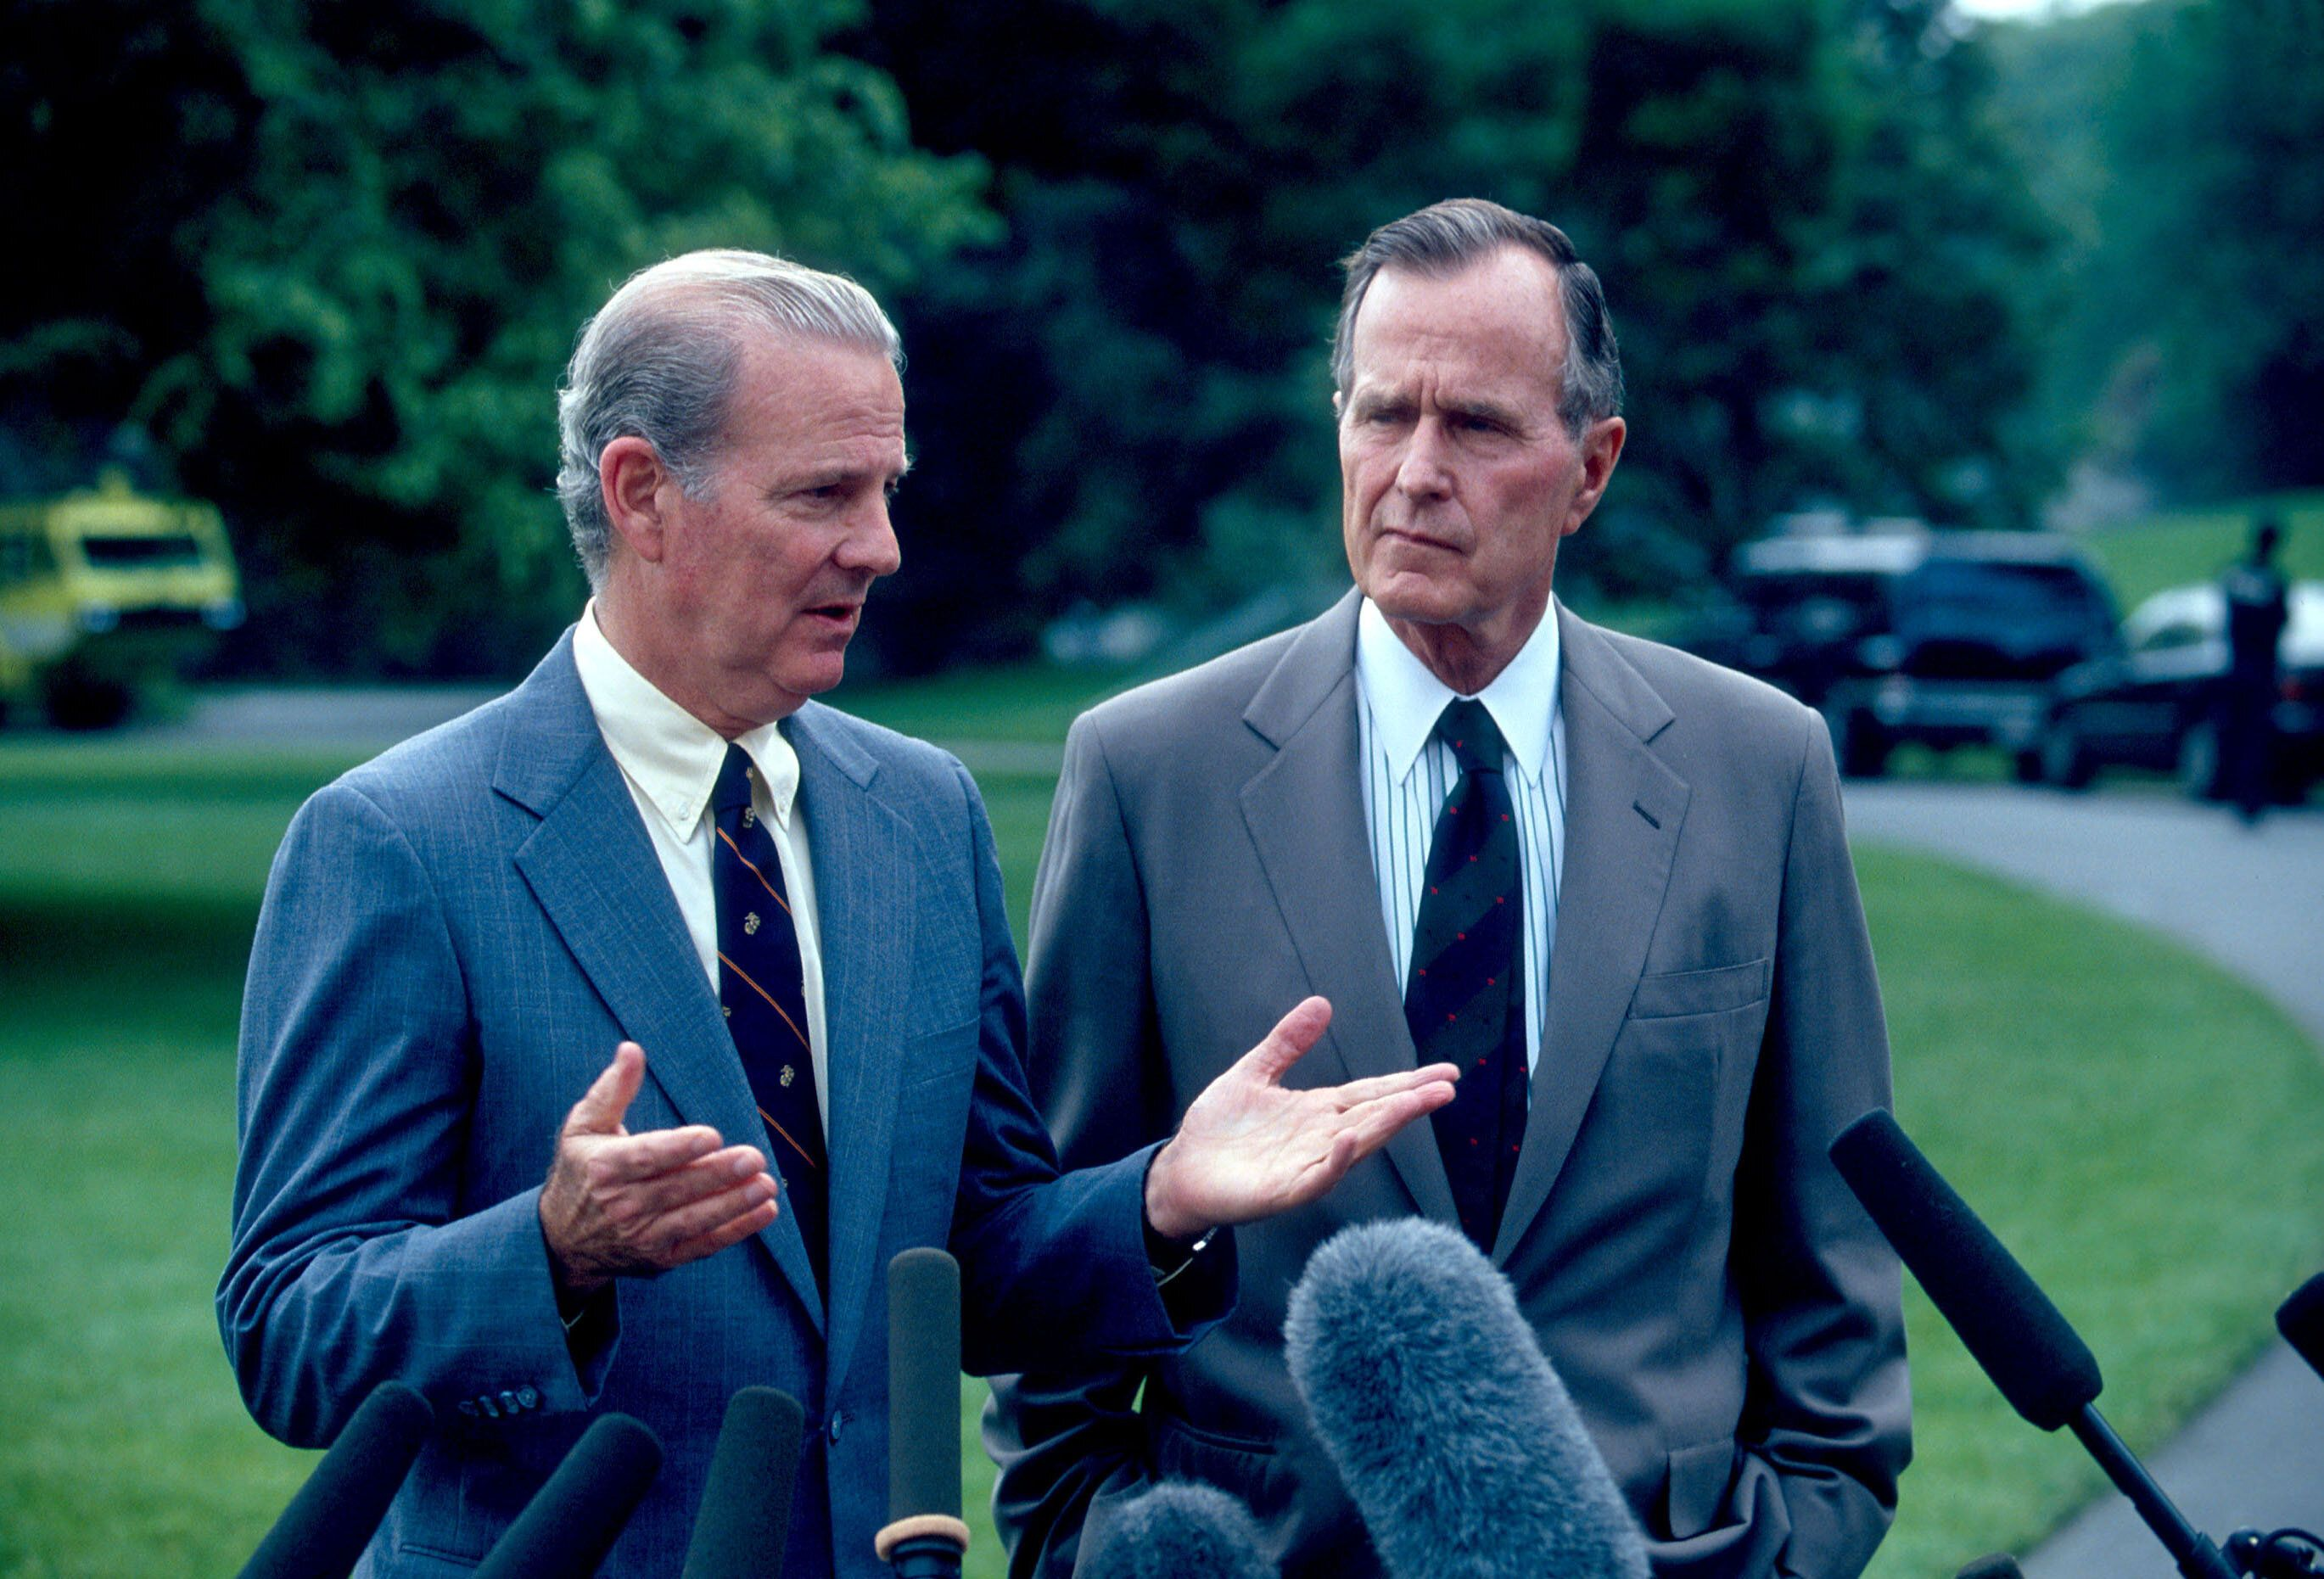 Secretary of State James A. Baker III and President George H.W. Bush speak to the press in May 1991. After the first Gulf War